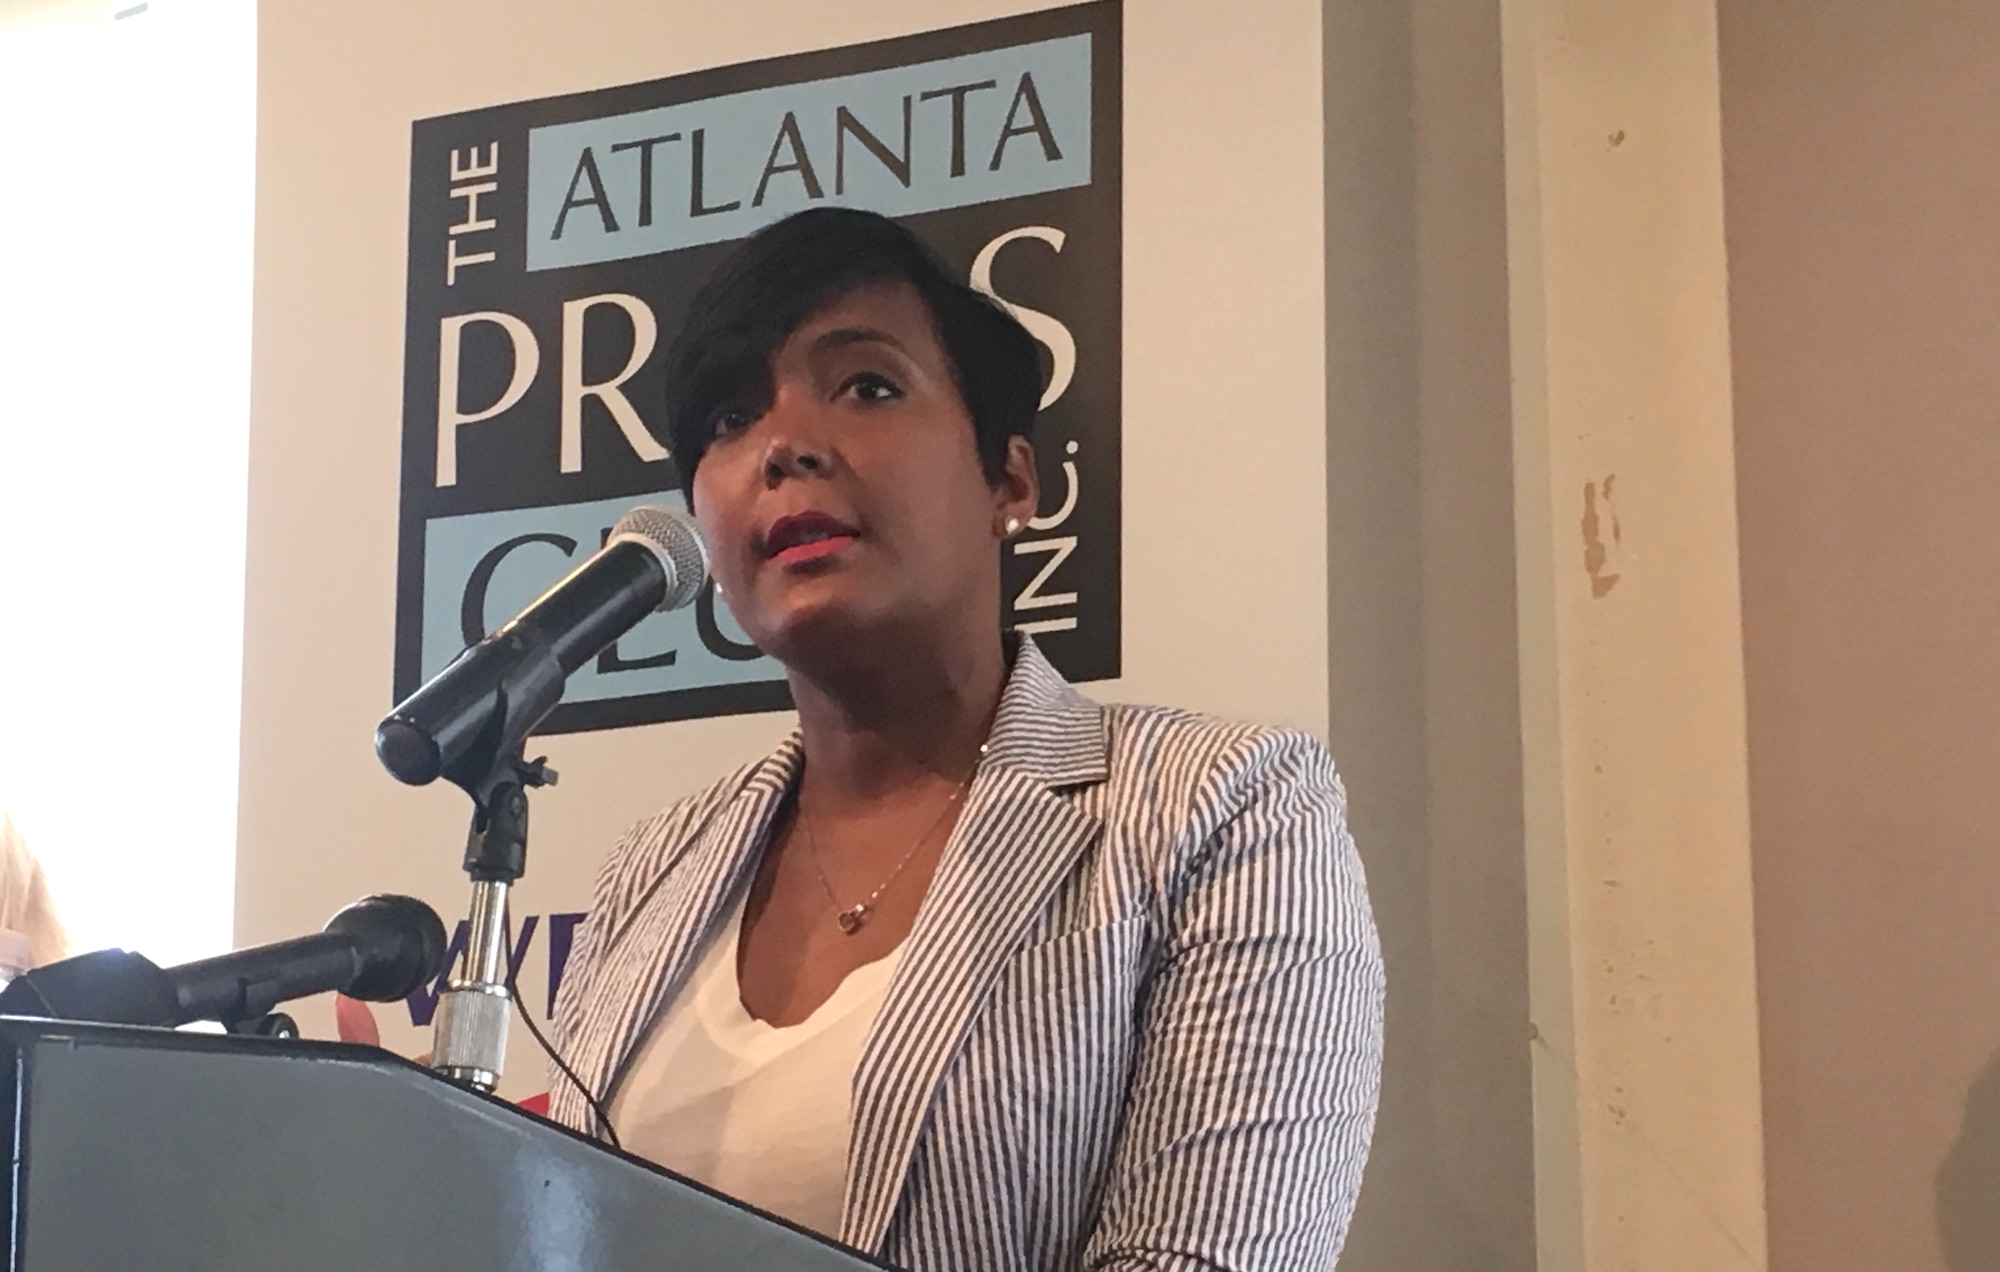 Atlanta Mayor Keisha Lance Bottoms, speaking at the Atlanta Press Club on Tuesday, Credit: Maggie Lee